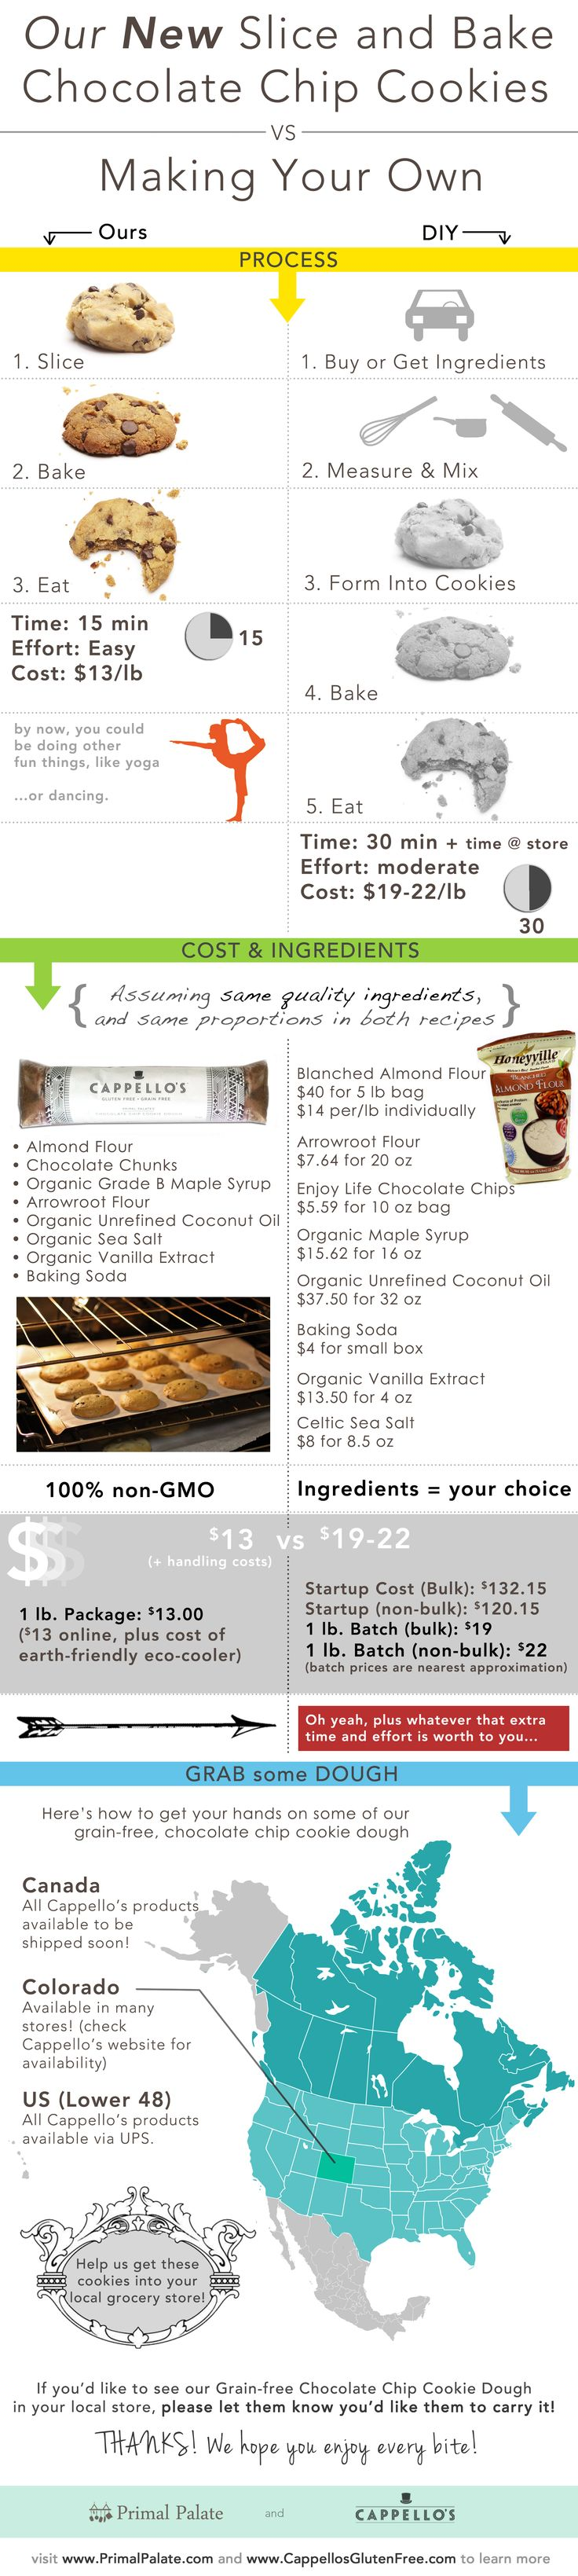 A little info-graphic we put together about our new cookie dough, with some cost analysis stuff for anyone wondering!